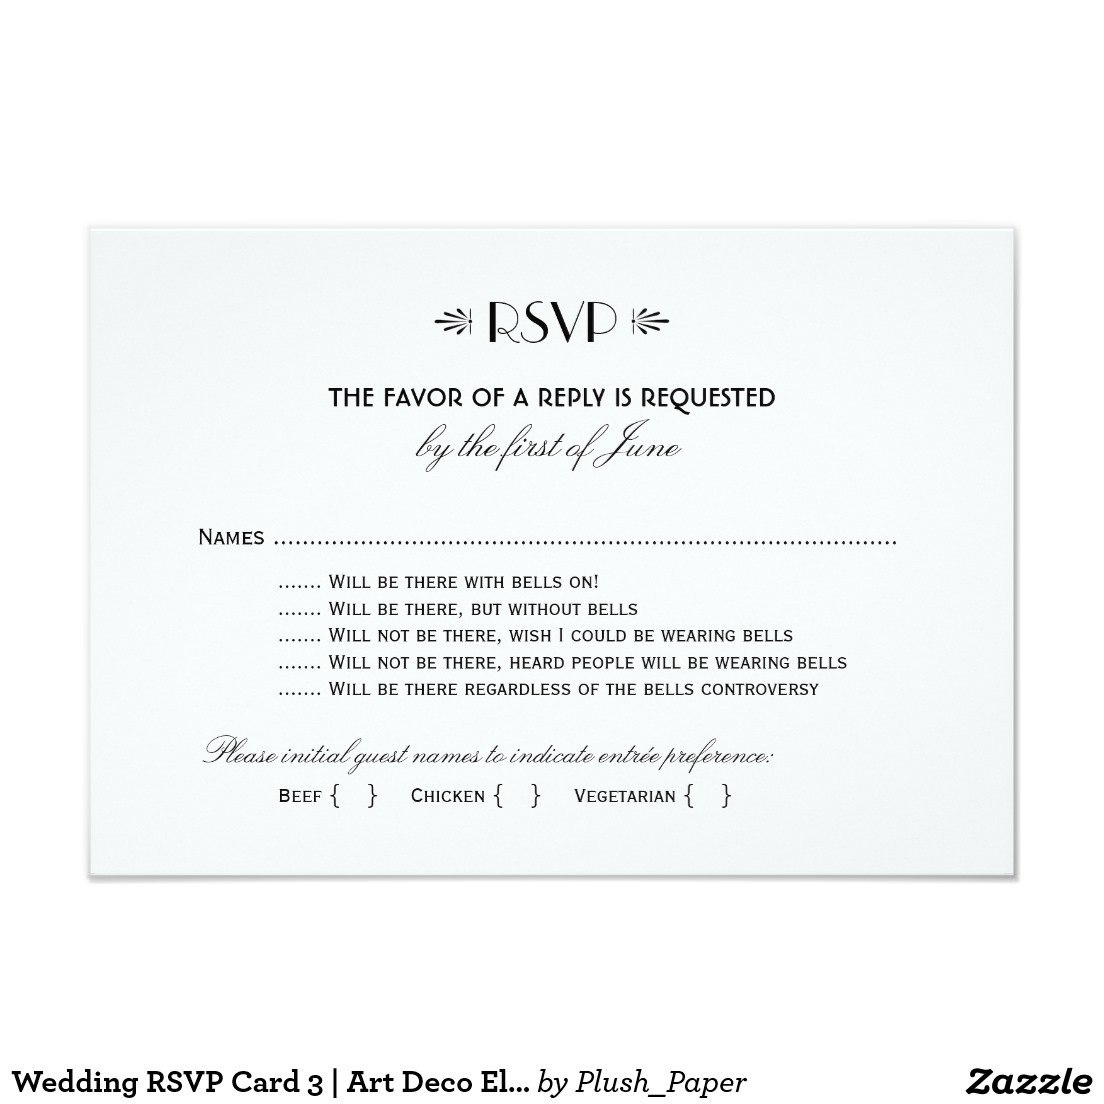 Invitations Endearing Rsvp Wedding Cards Inspirations — Claudiapink Inside Wedding Rsvp Menu Choice Template